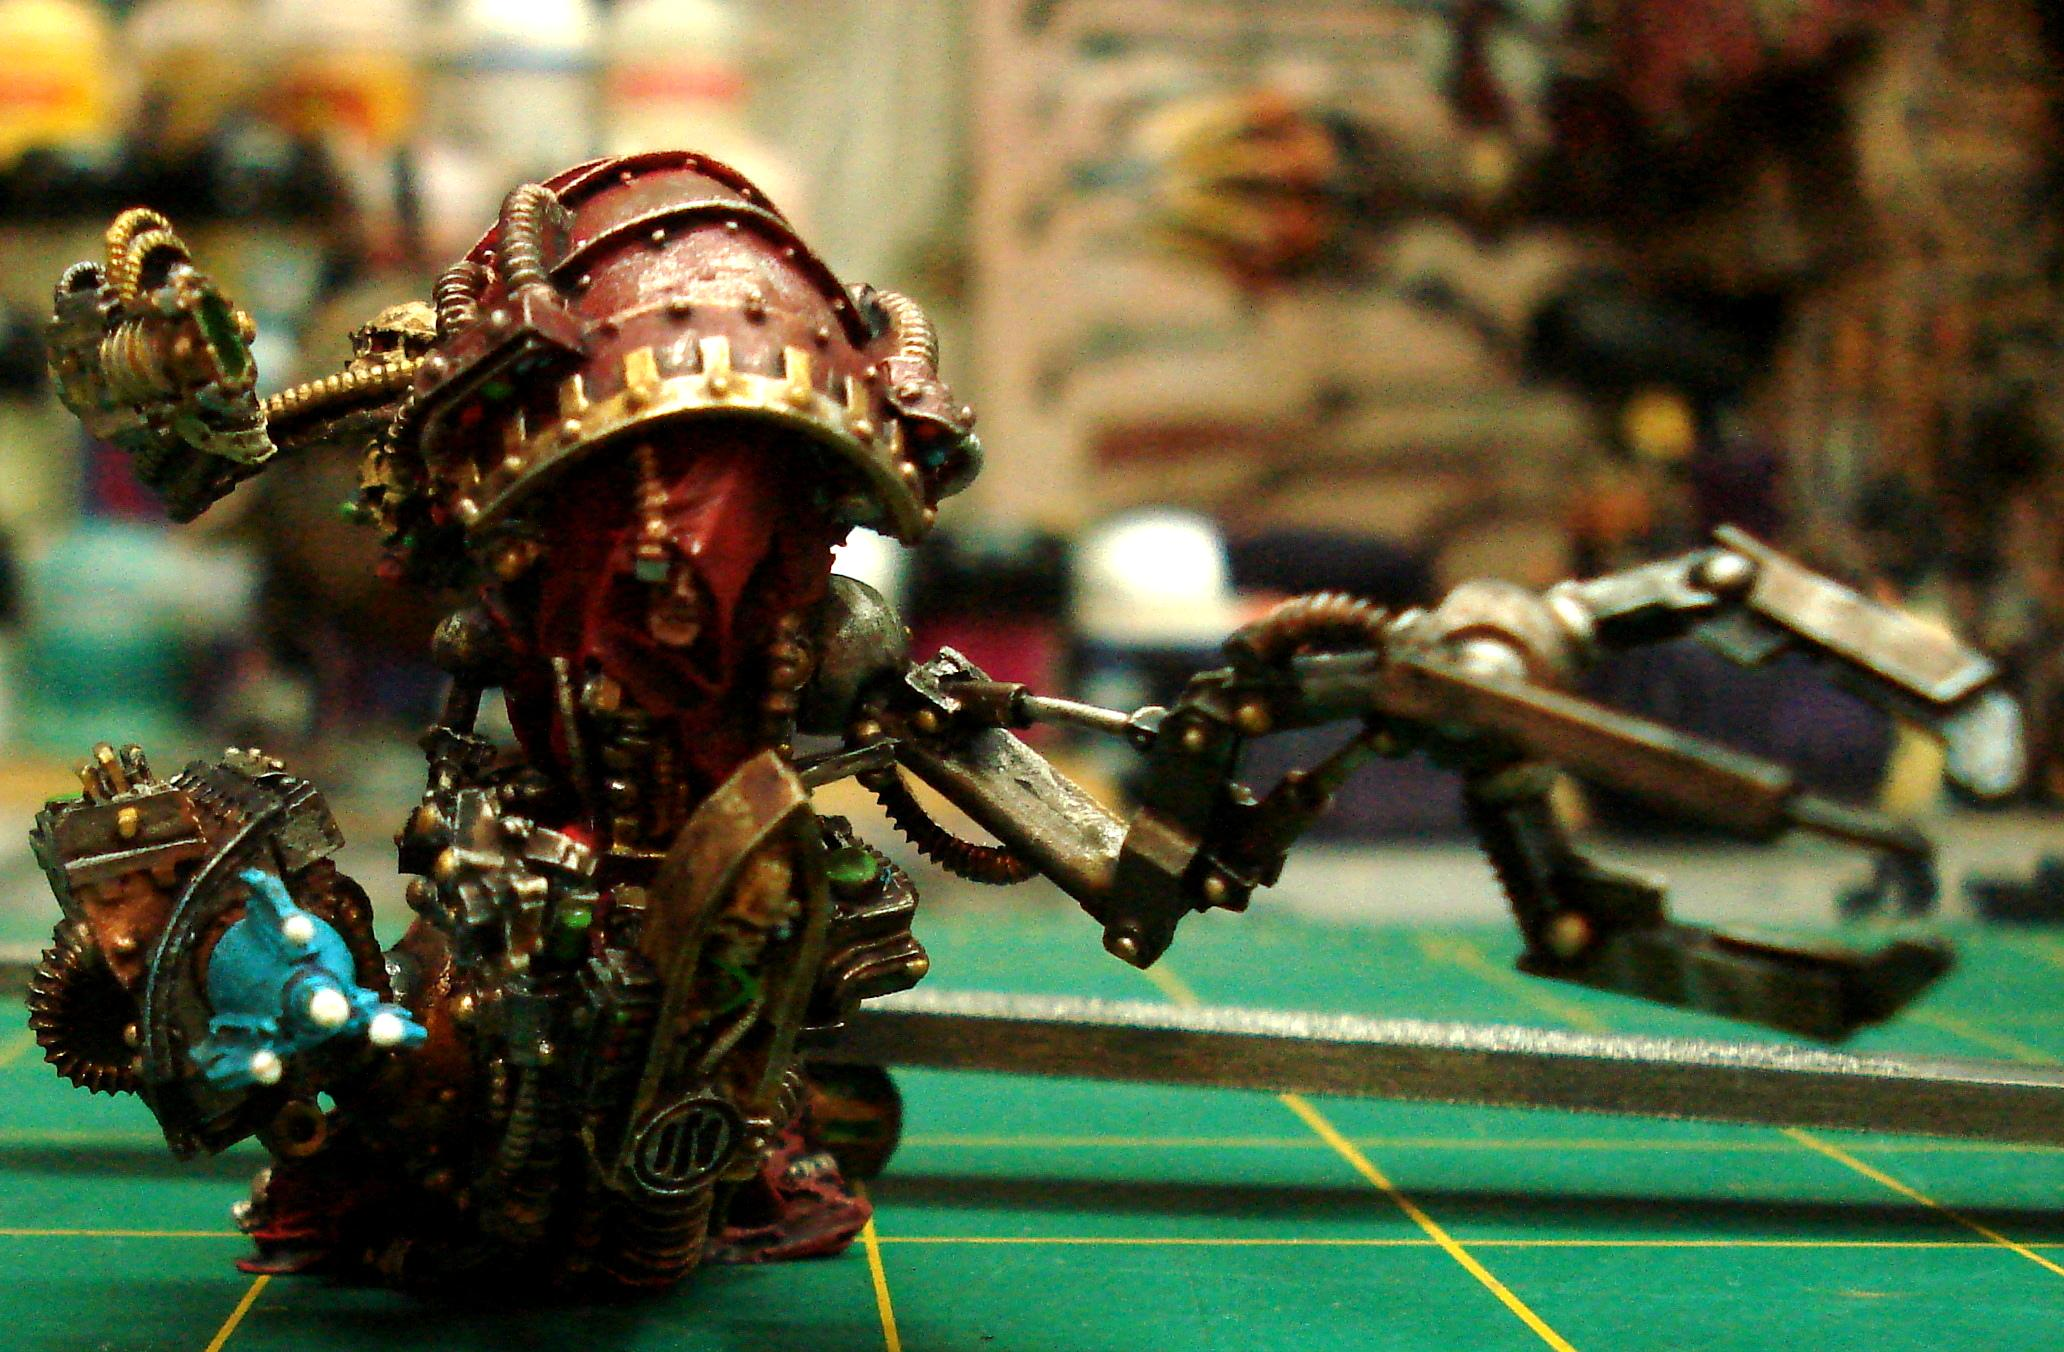 Forge, Magos, Mechanicum, Mechanicus, Priest, Rad, Servo, Skull, Tech, Thallax, World